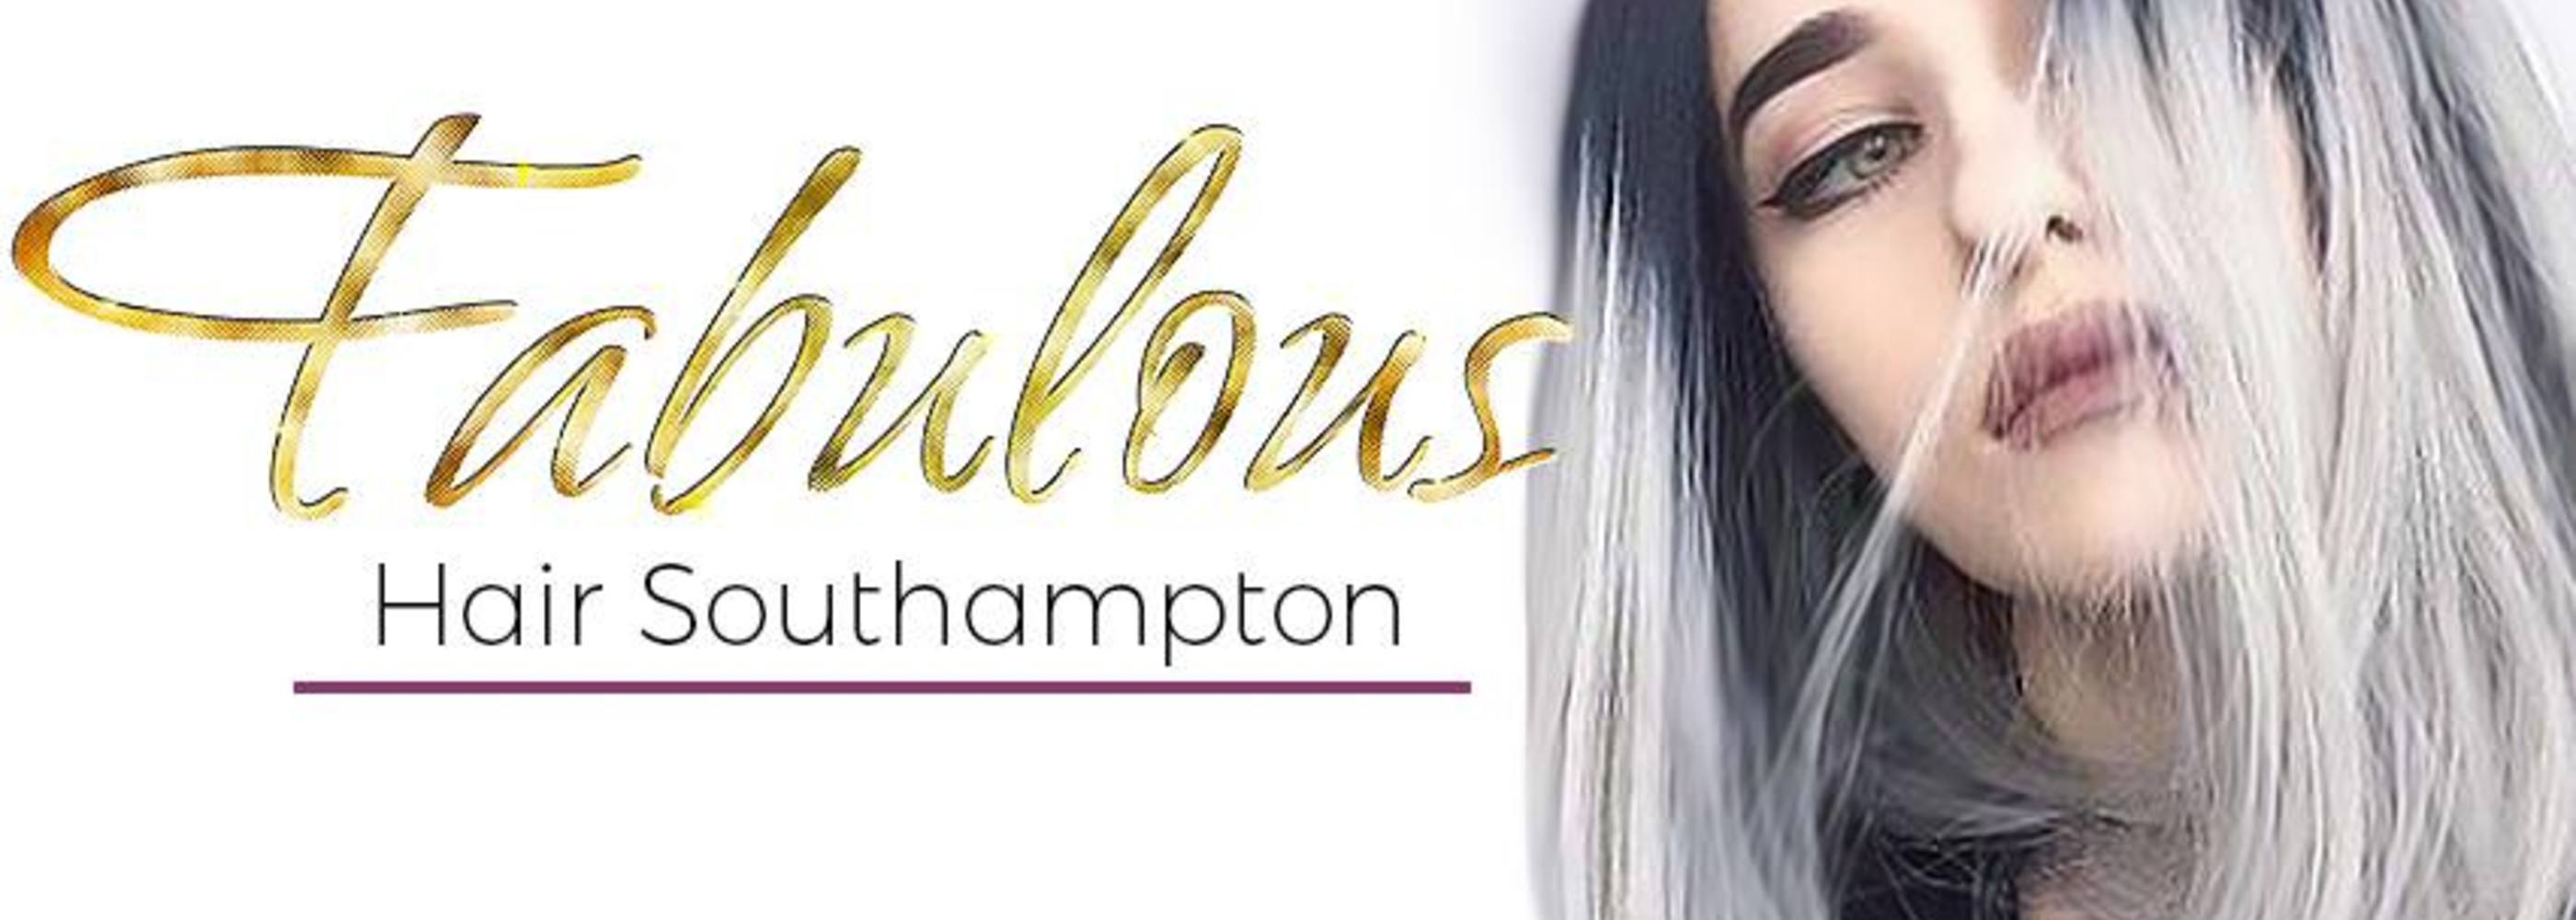 Fabulous Hair Extentions